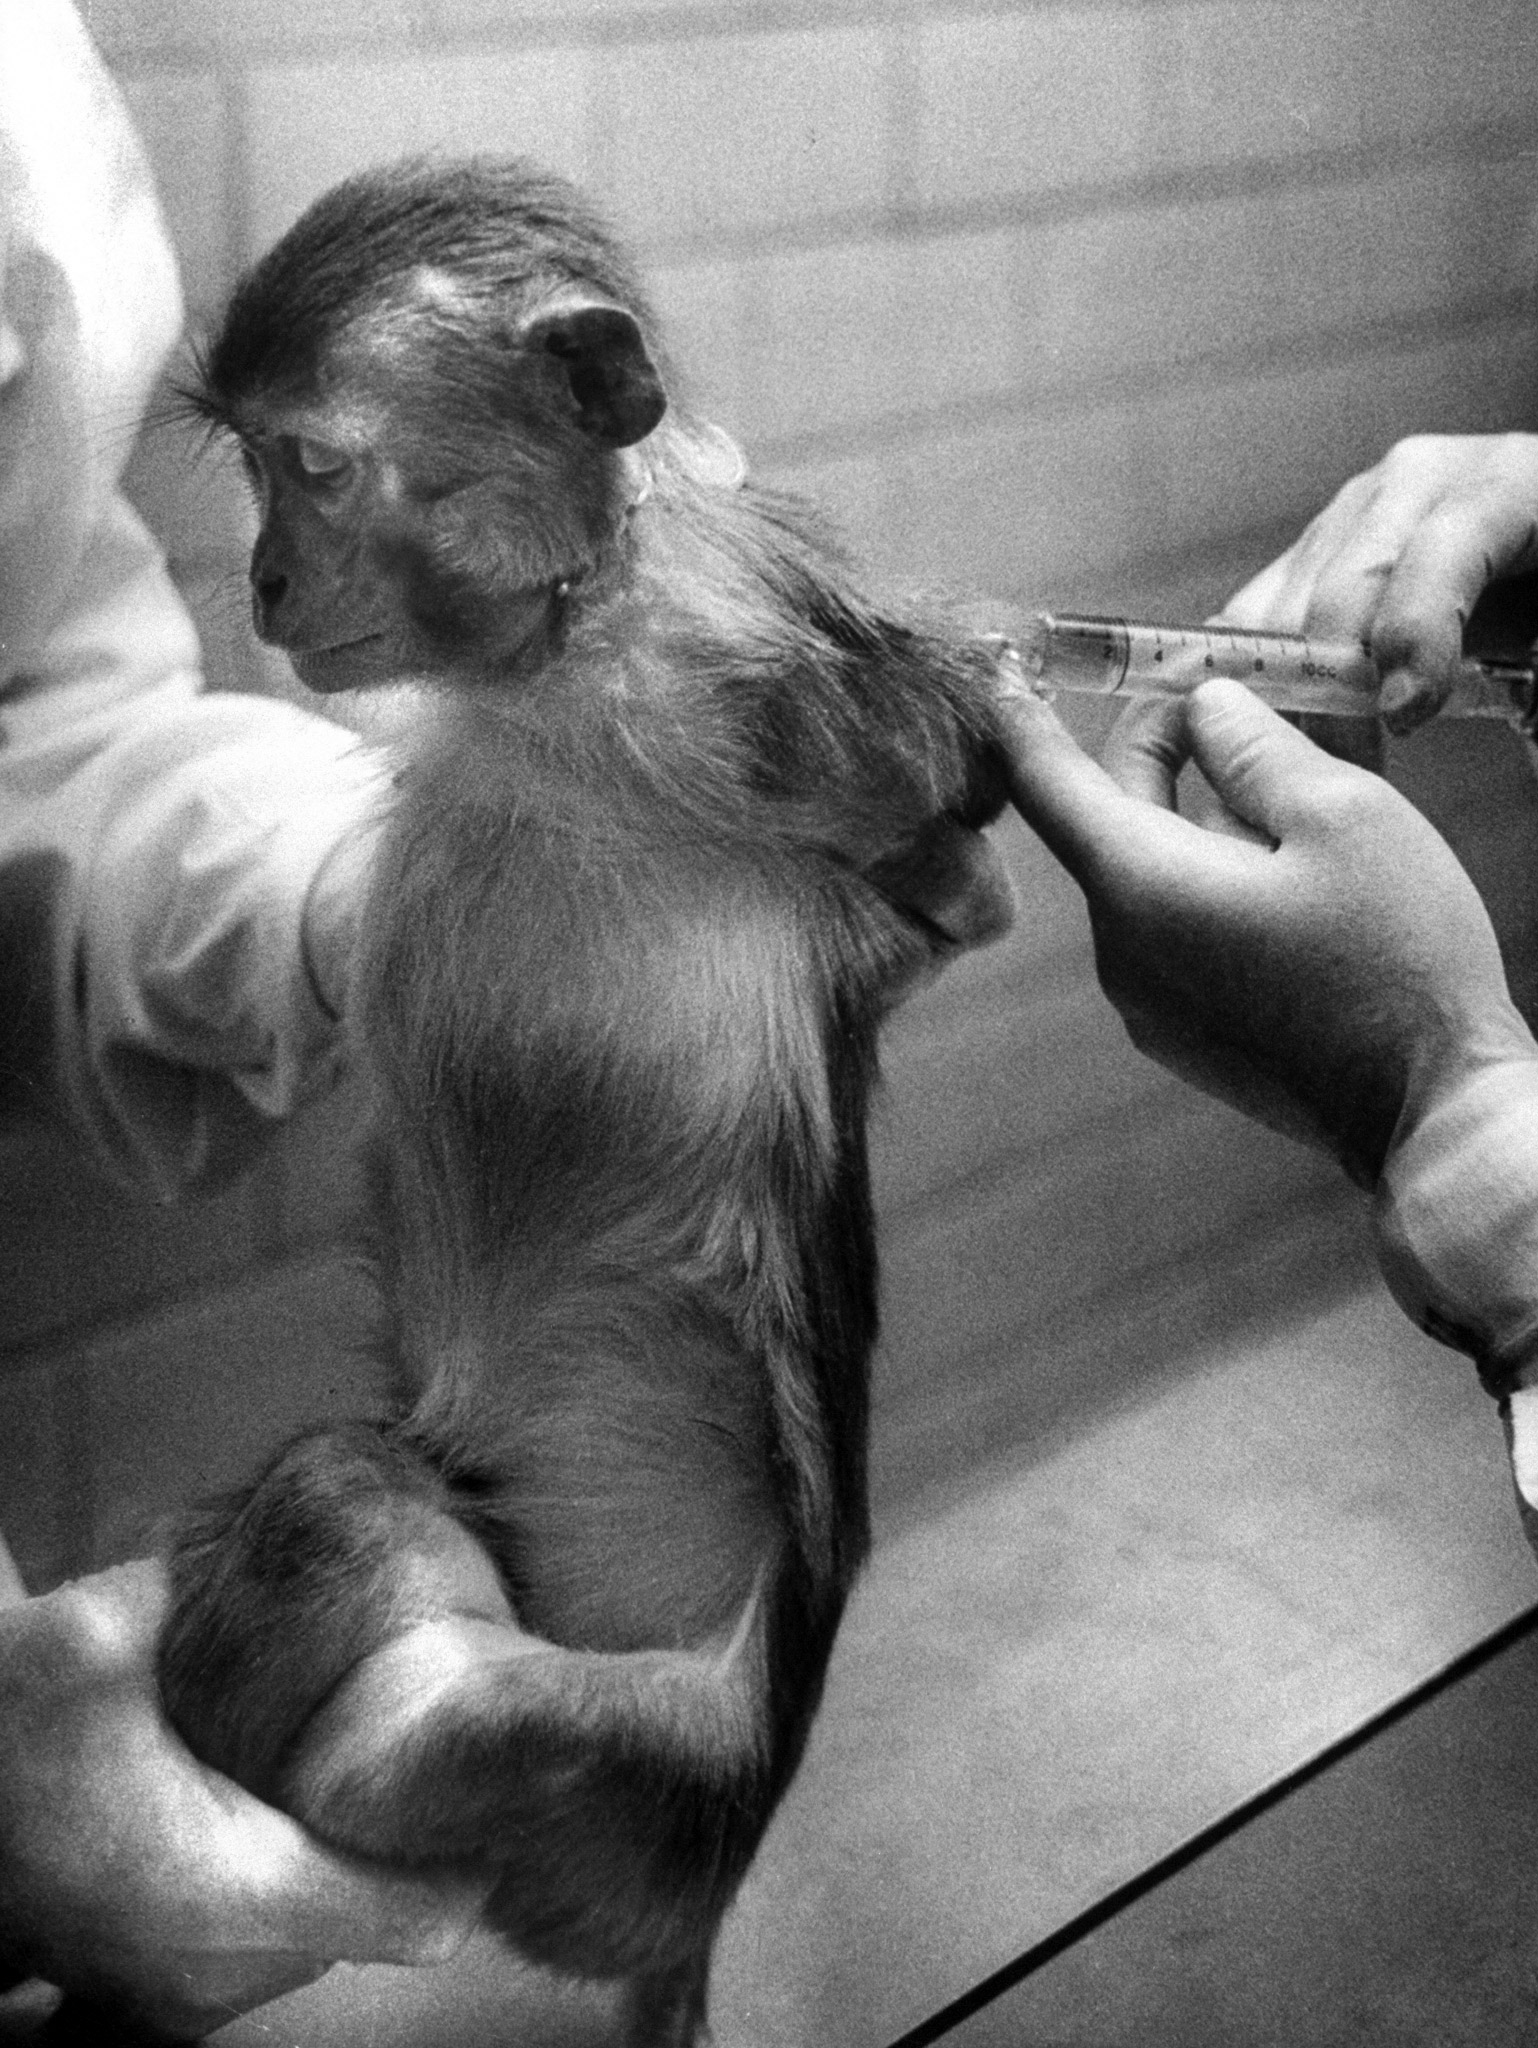 <b>Caption from LIFE.</b> Potency test is performed with monkey who gets injections of vaccine just as children. Blood sample is examined to see if antibodies have formed.